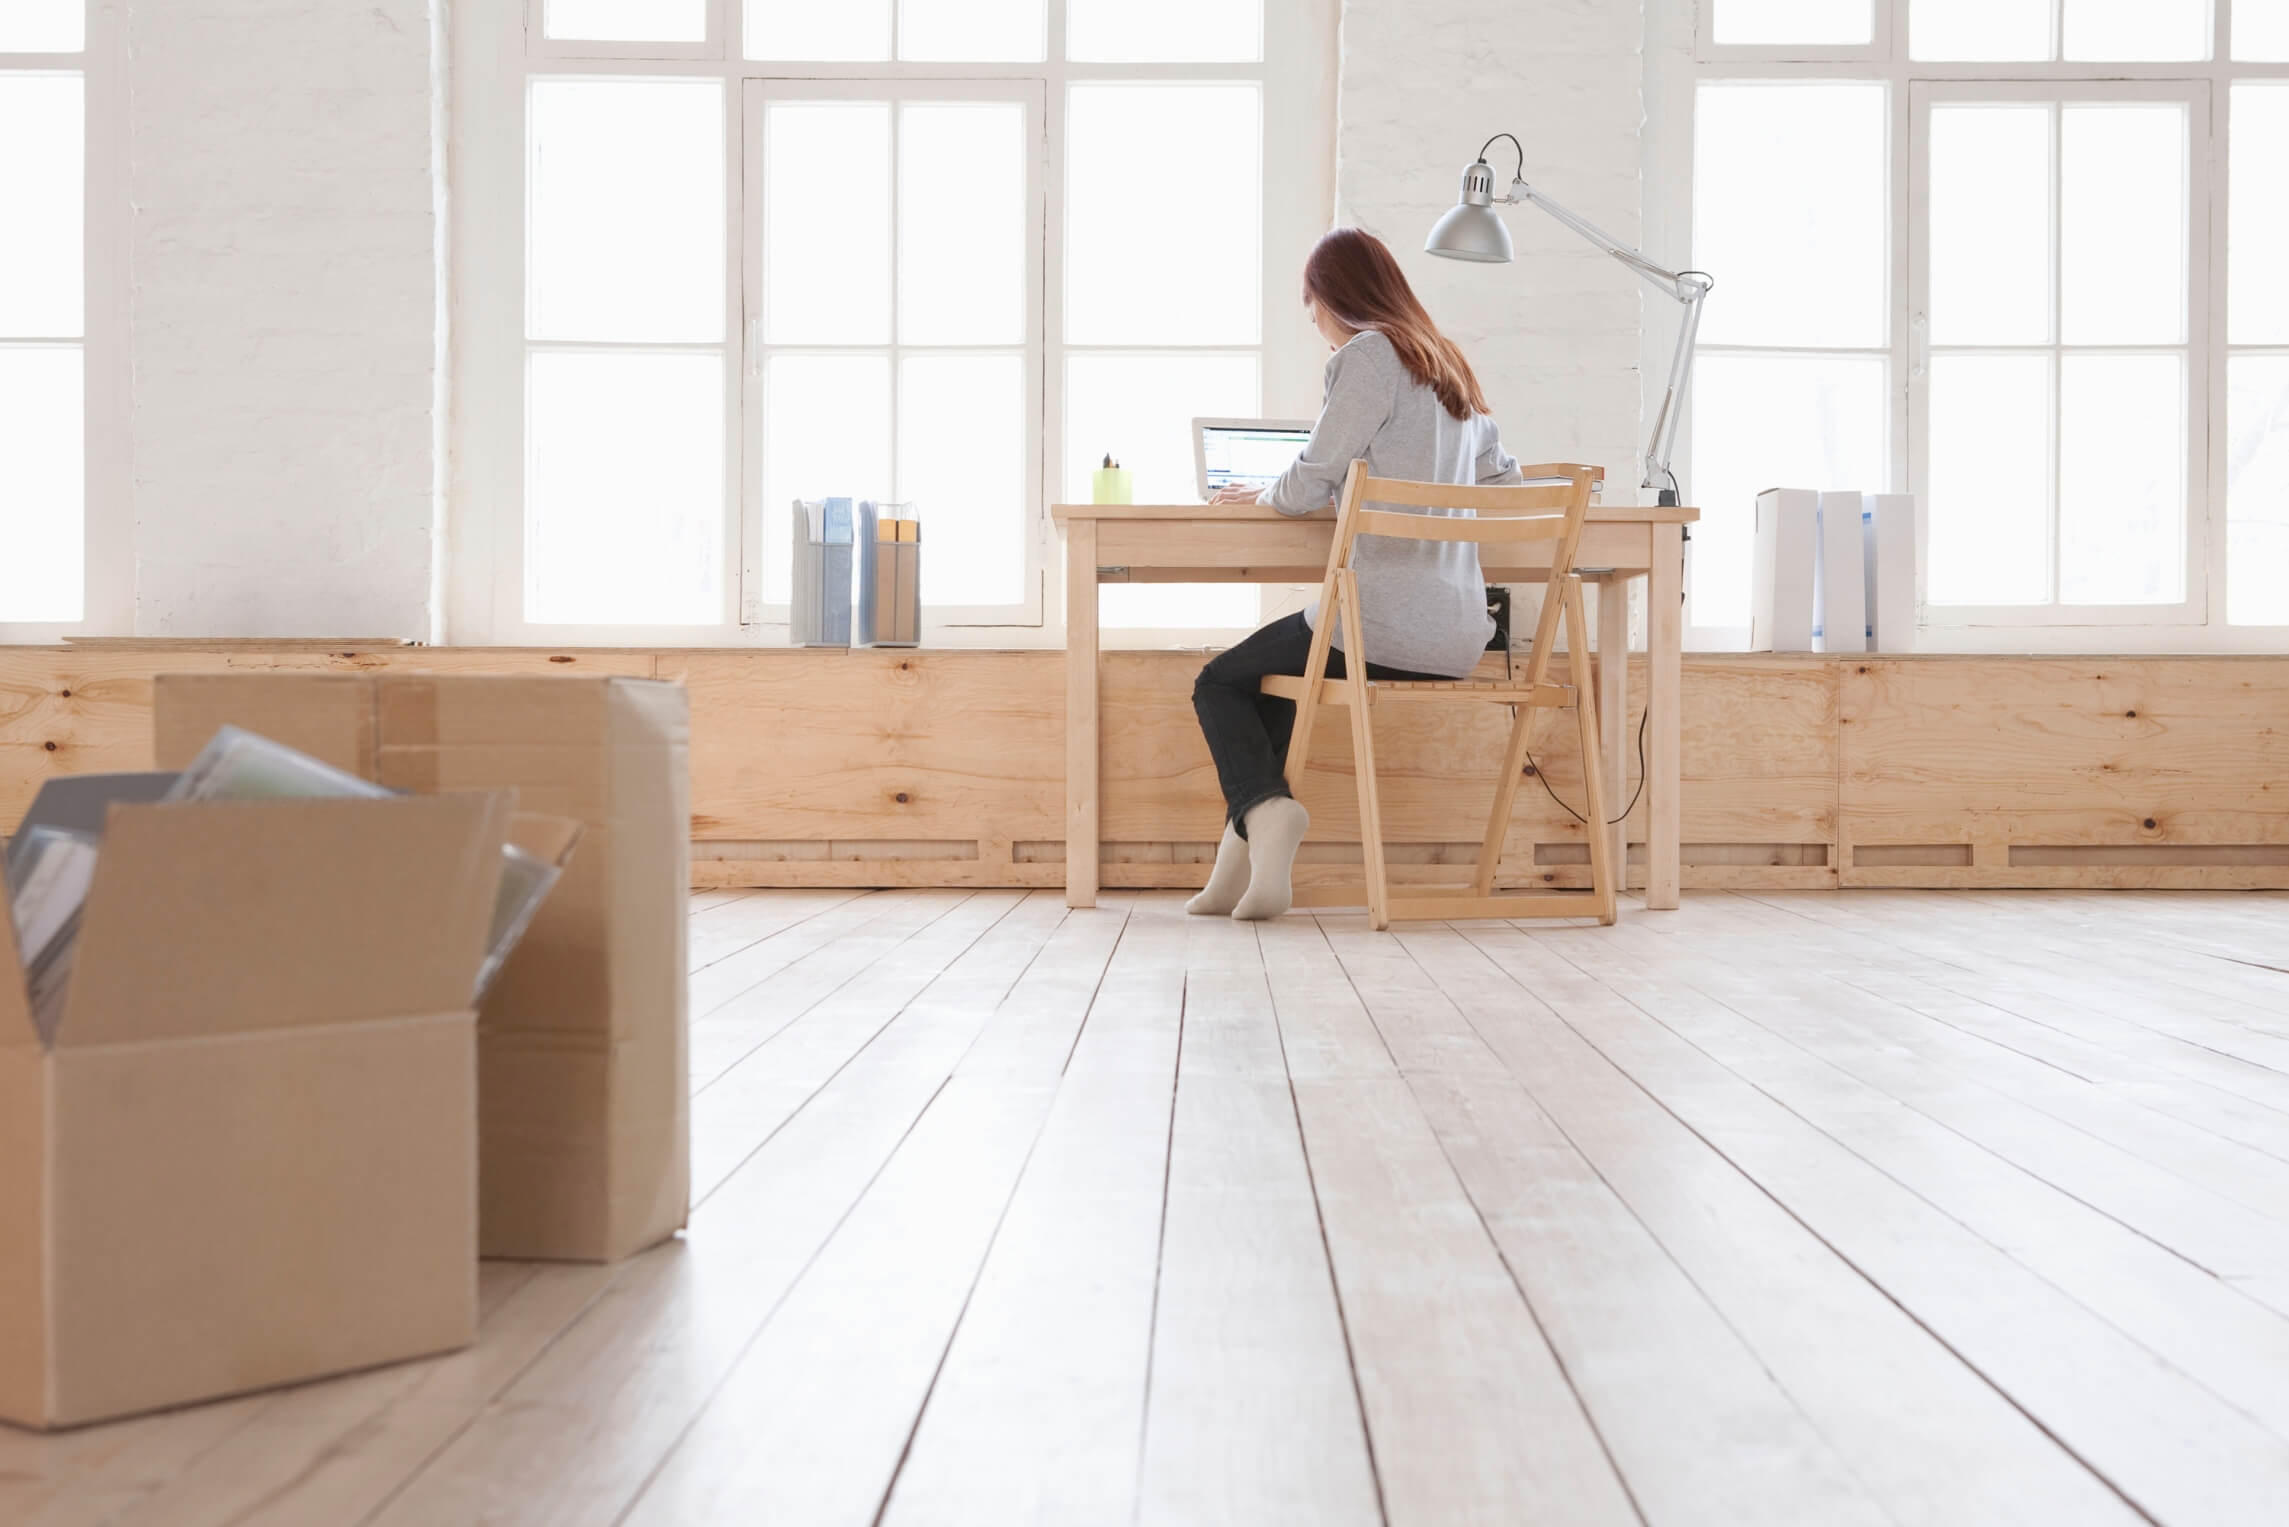 20 Moving Tips to Make Your Move a Breeze